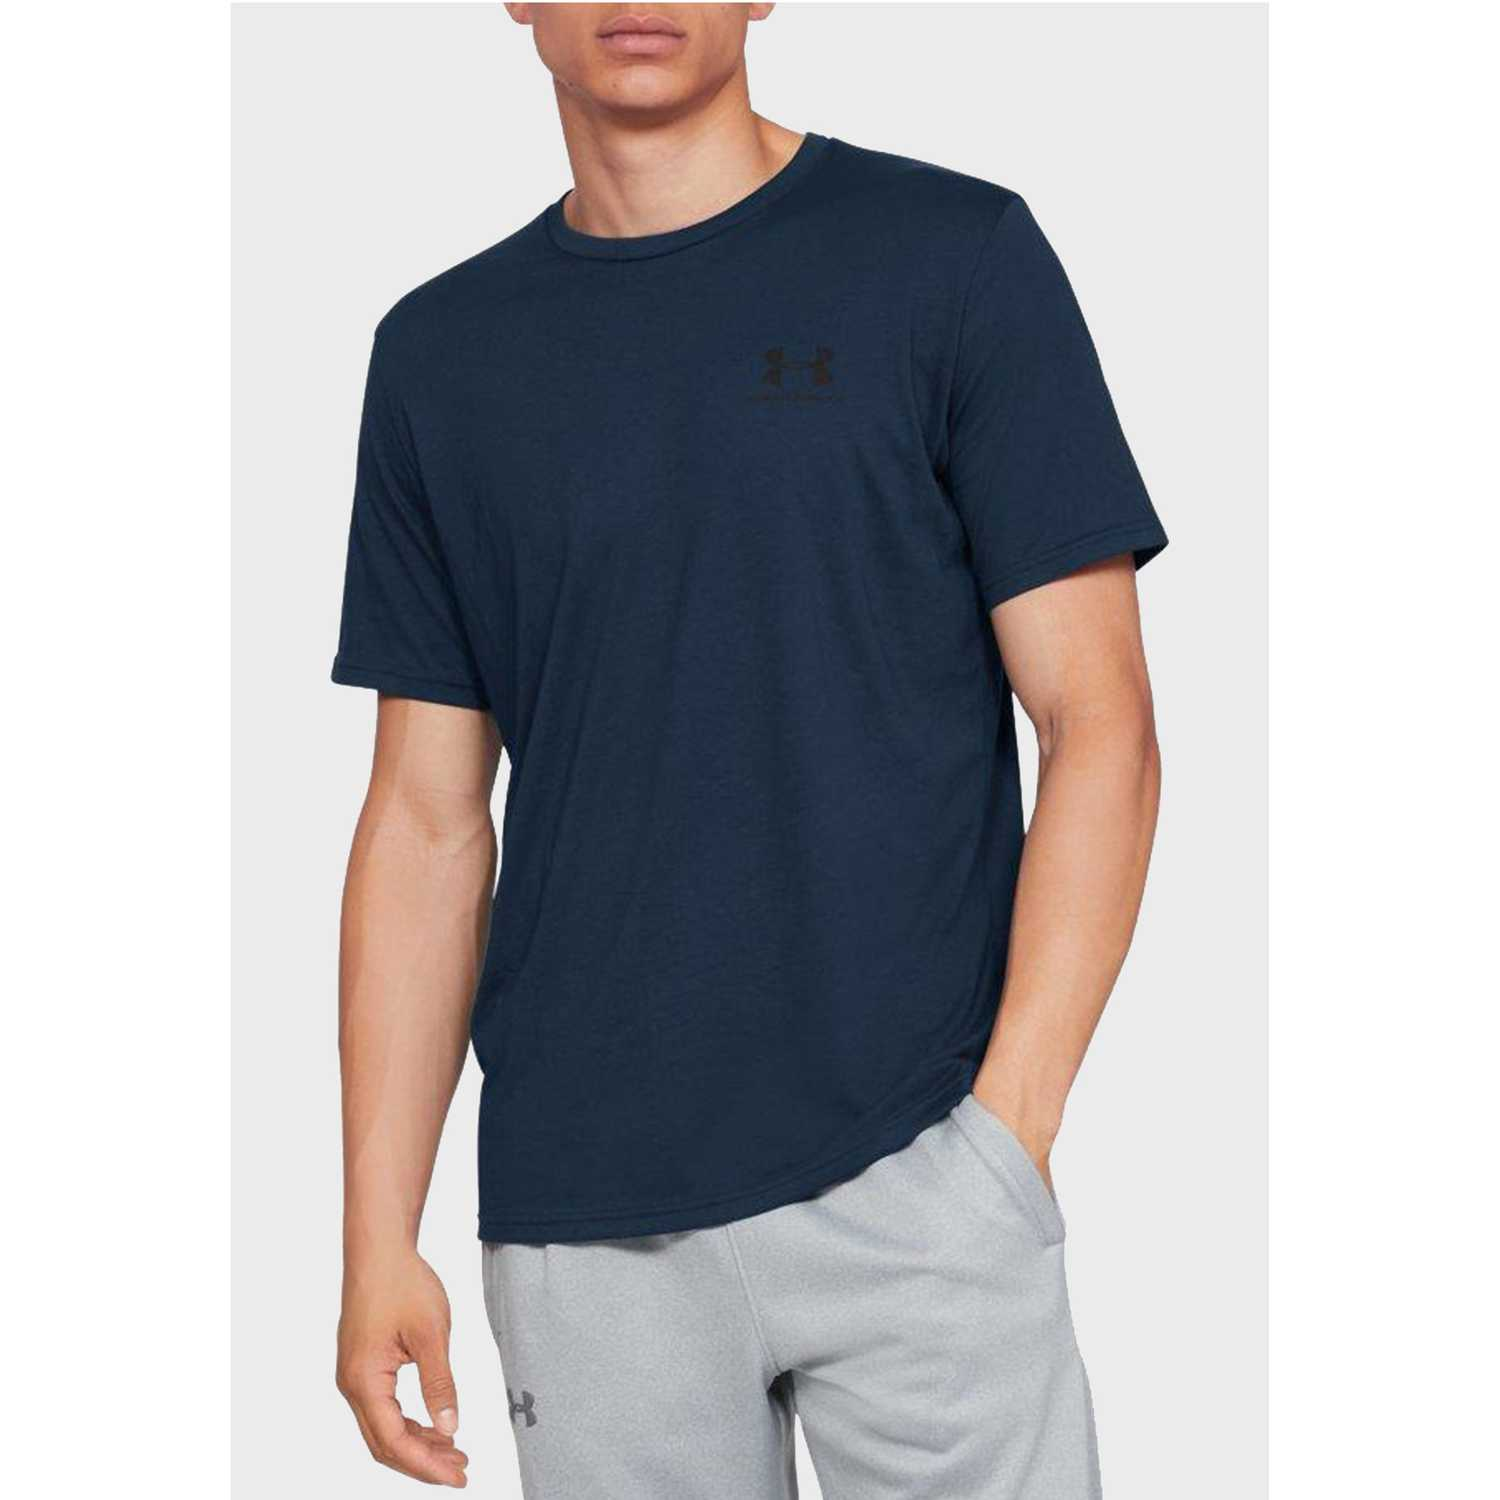 Under Armour Sportstyle Left Chest Ss-Nvy Acero Camisetas y Polos Deportivos